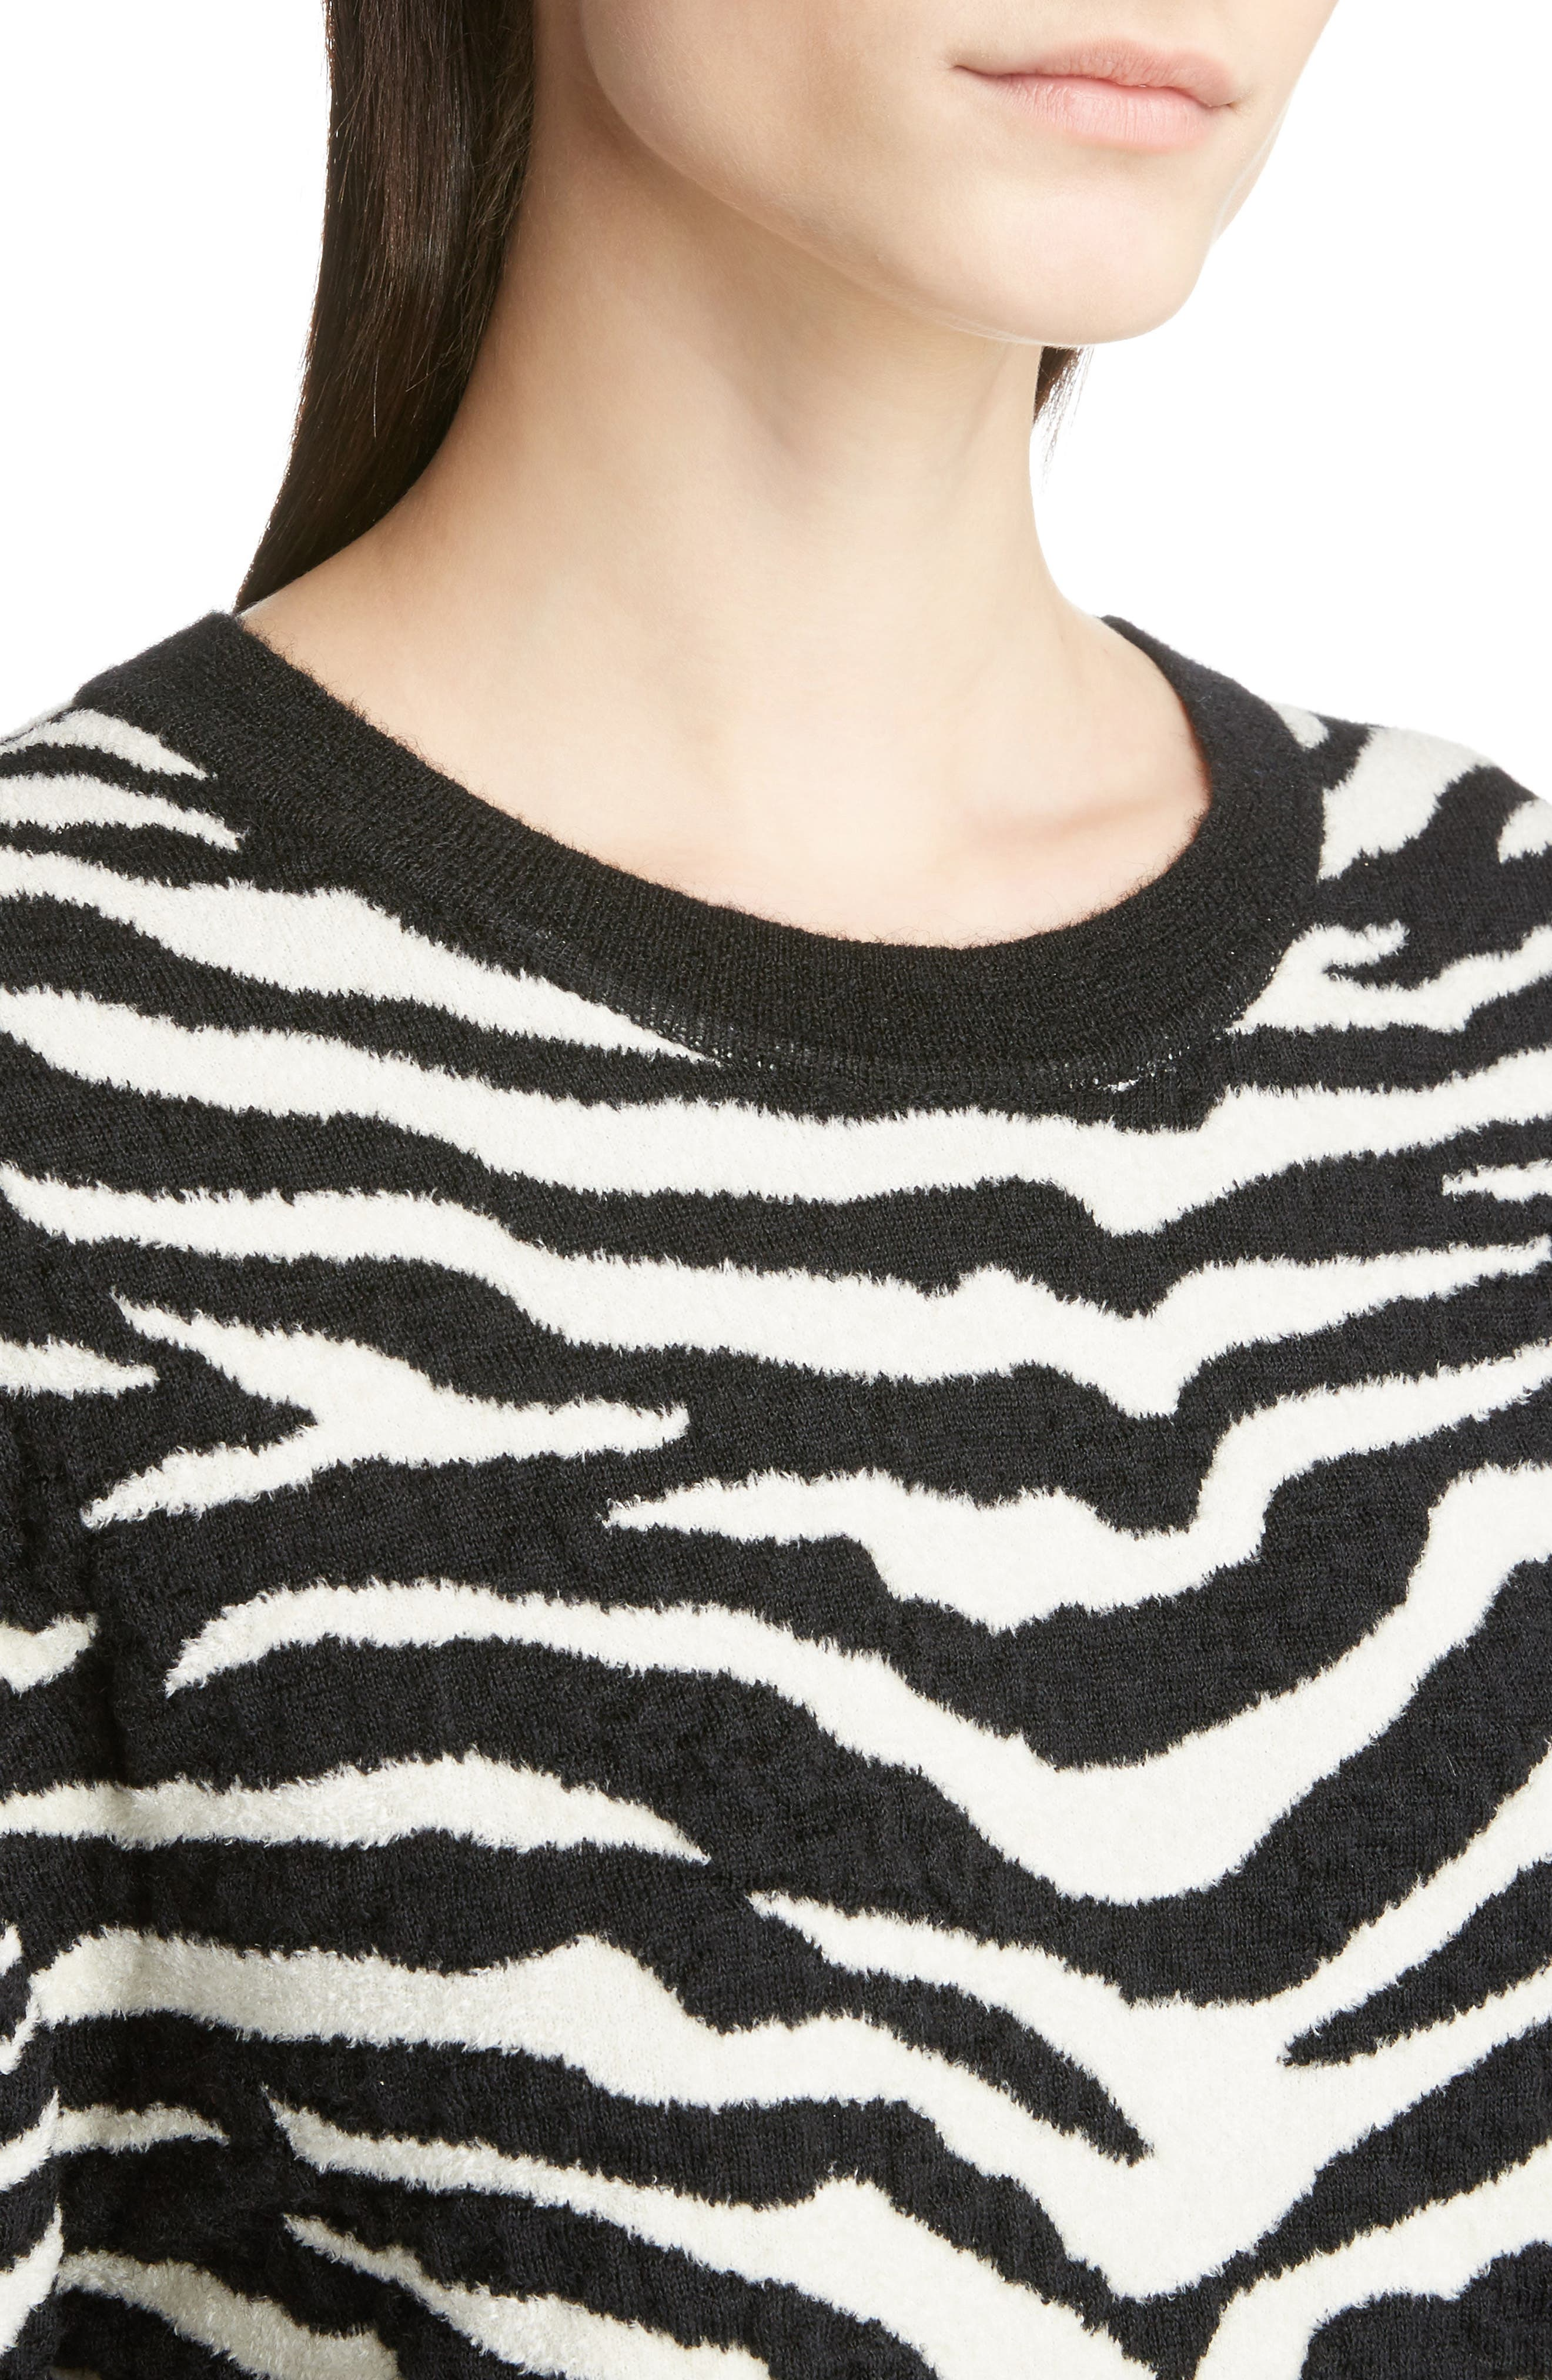 Tiger Knit Sweater,                             Alternate thumbnail 4, color,                             001